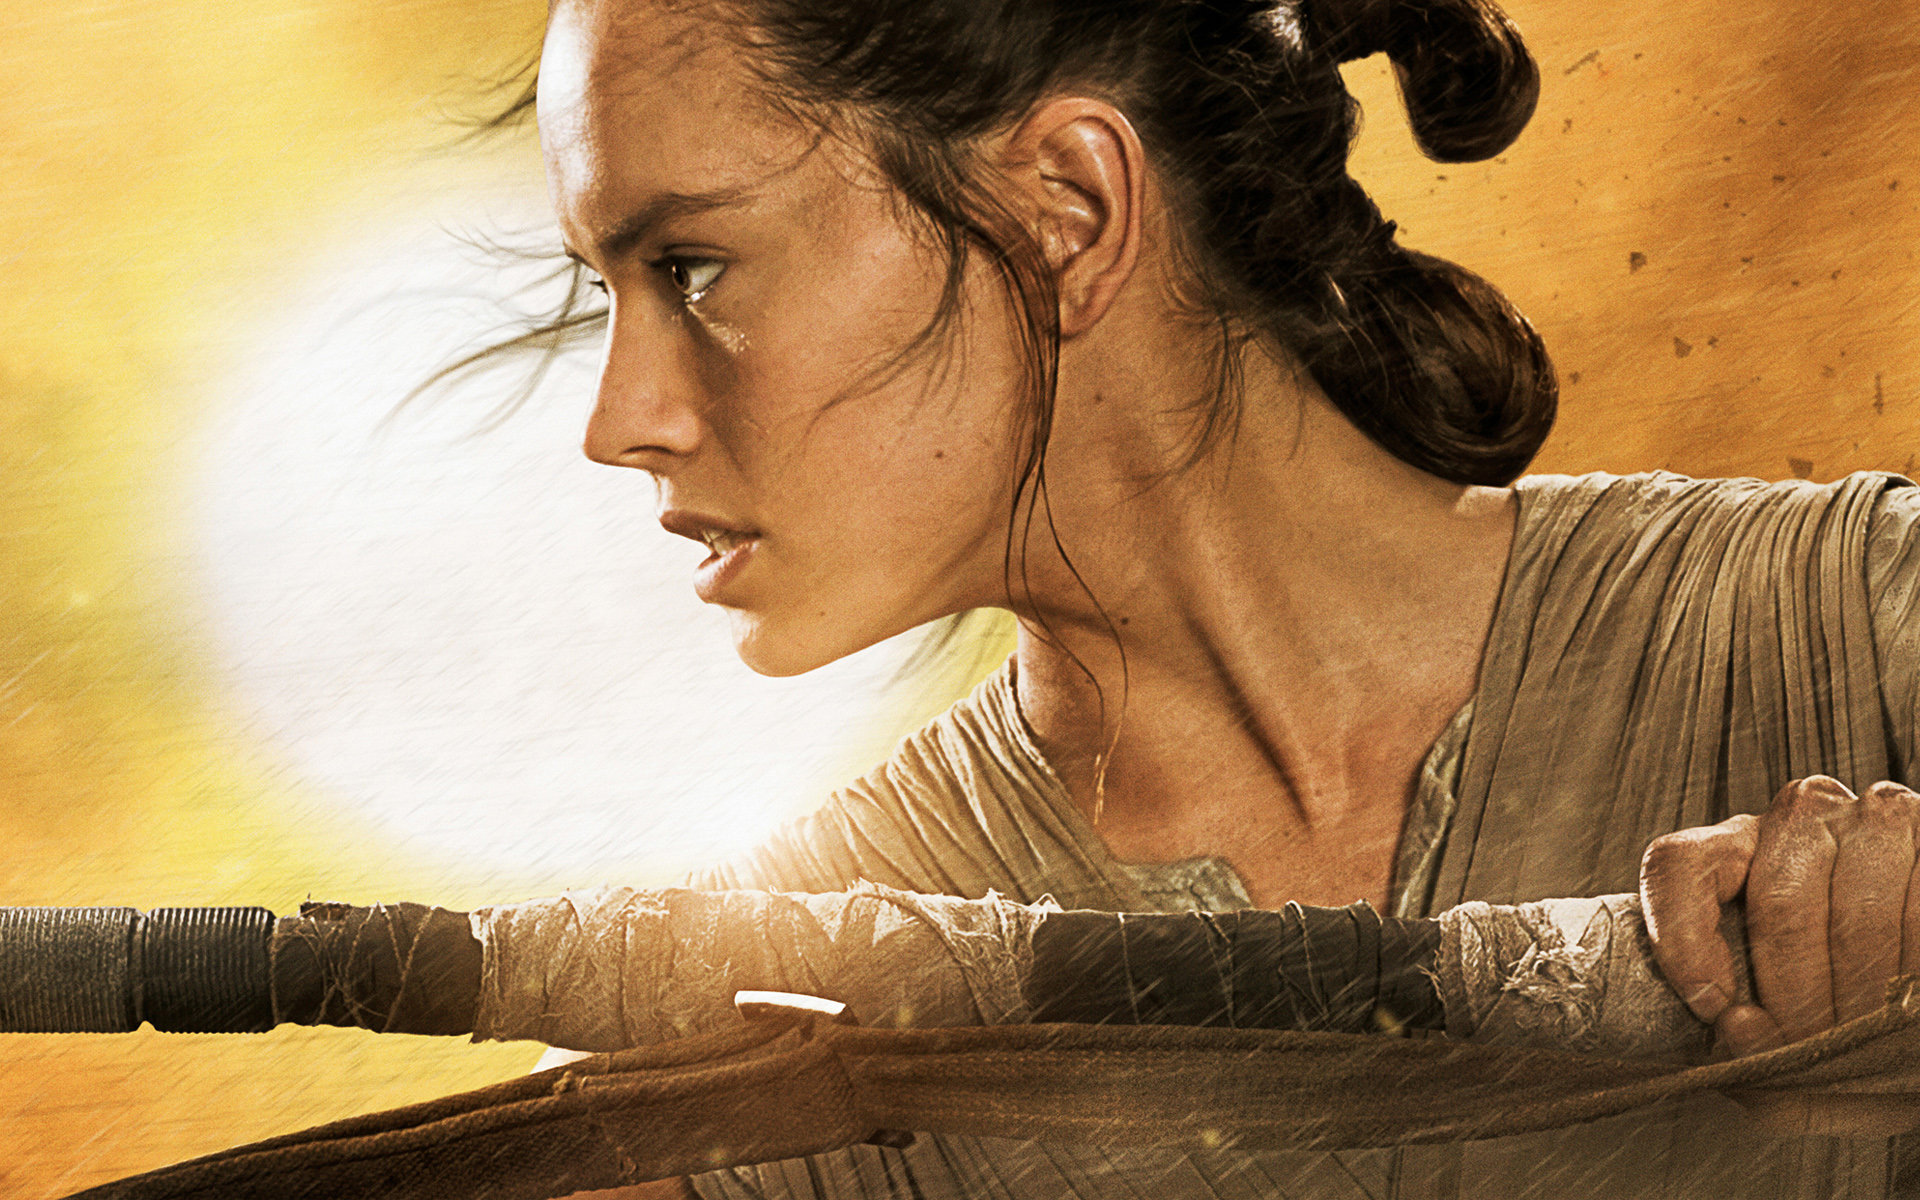 Rey Star Wars Wallpapers Hd For Desktop Backgrounds